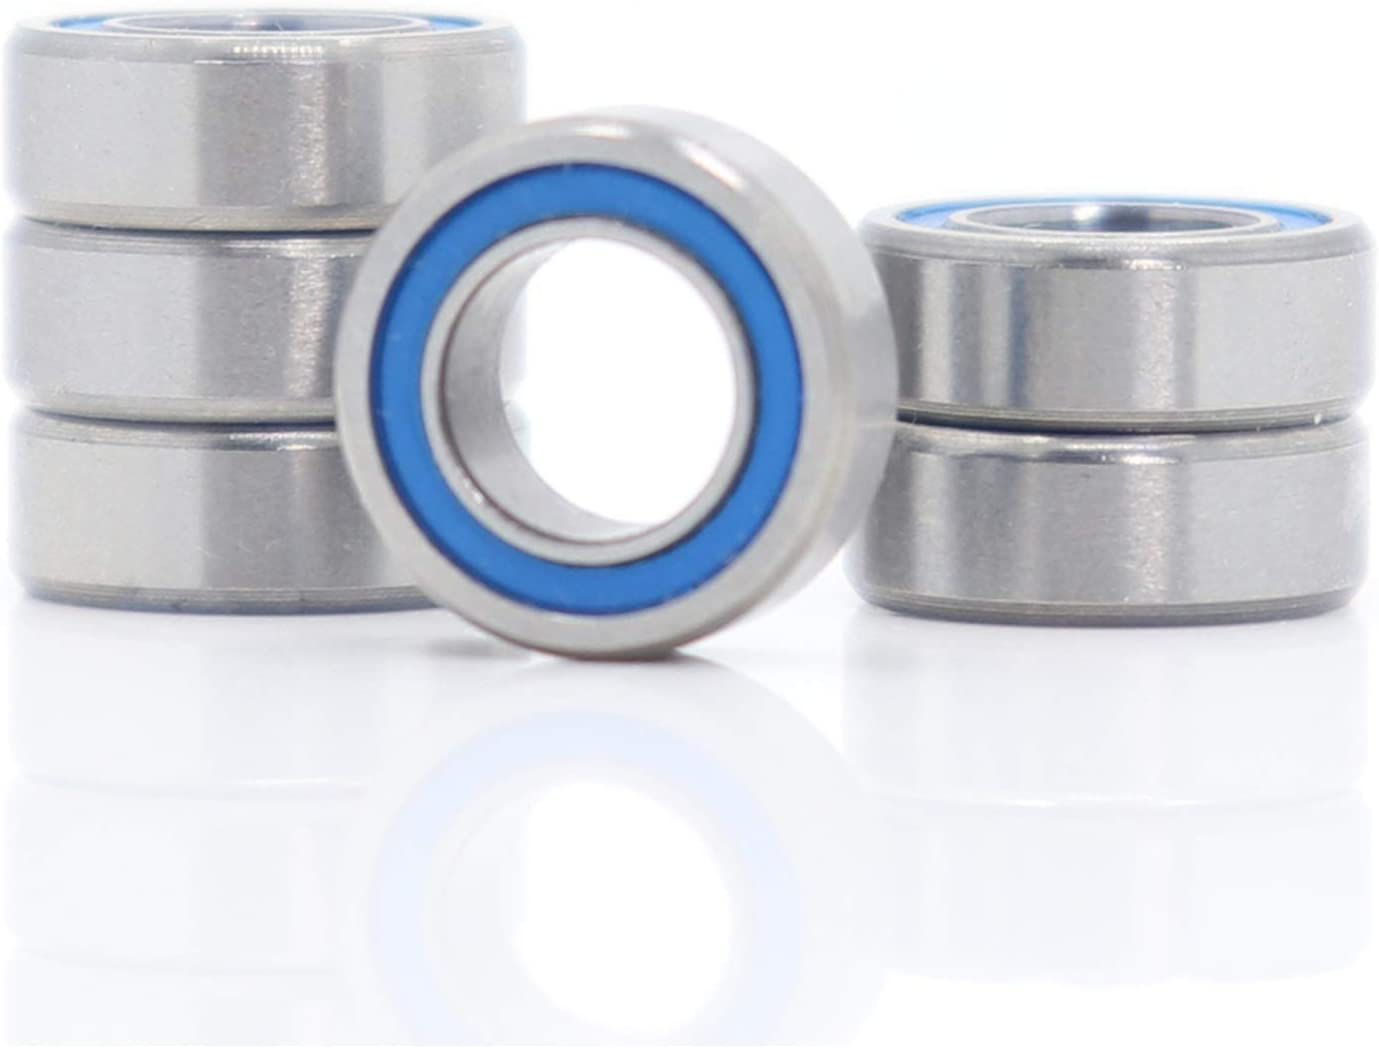 Bearing replacement MR116RS 6Pcs Bearings 6x11x4mm Challenge the lowest price Sealed Rapid rise A Blue